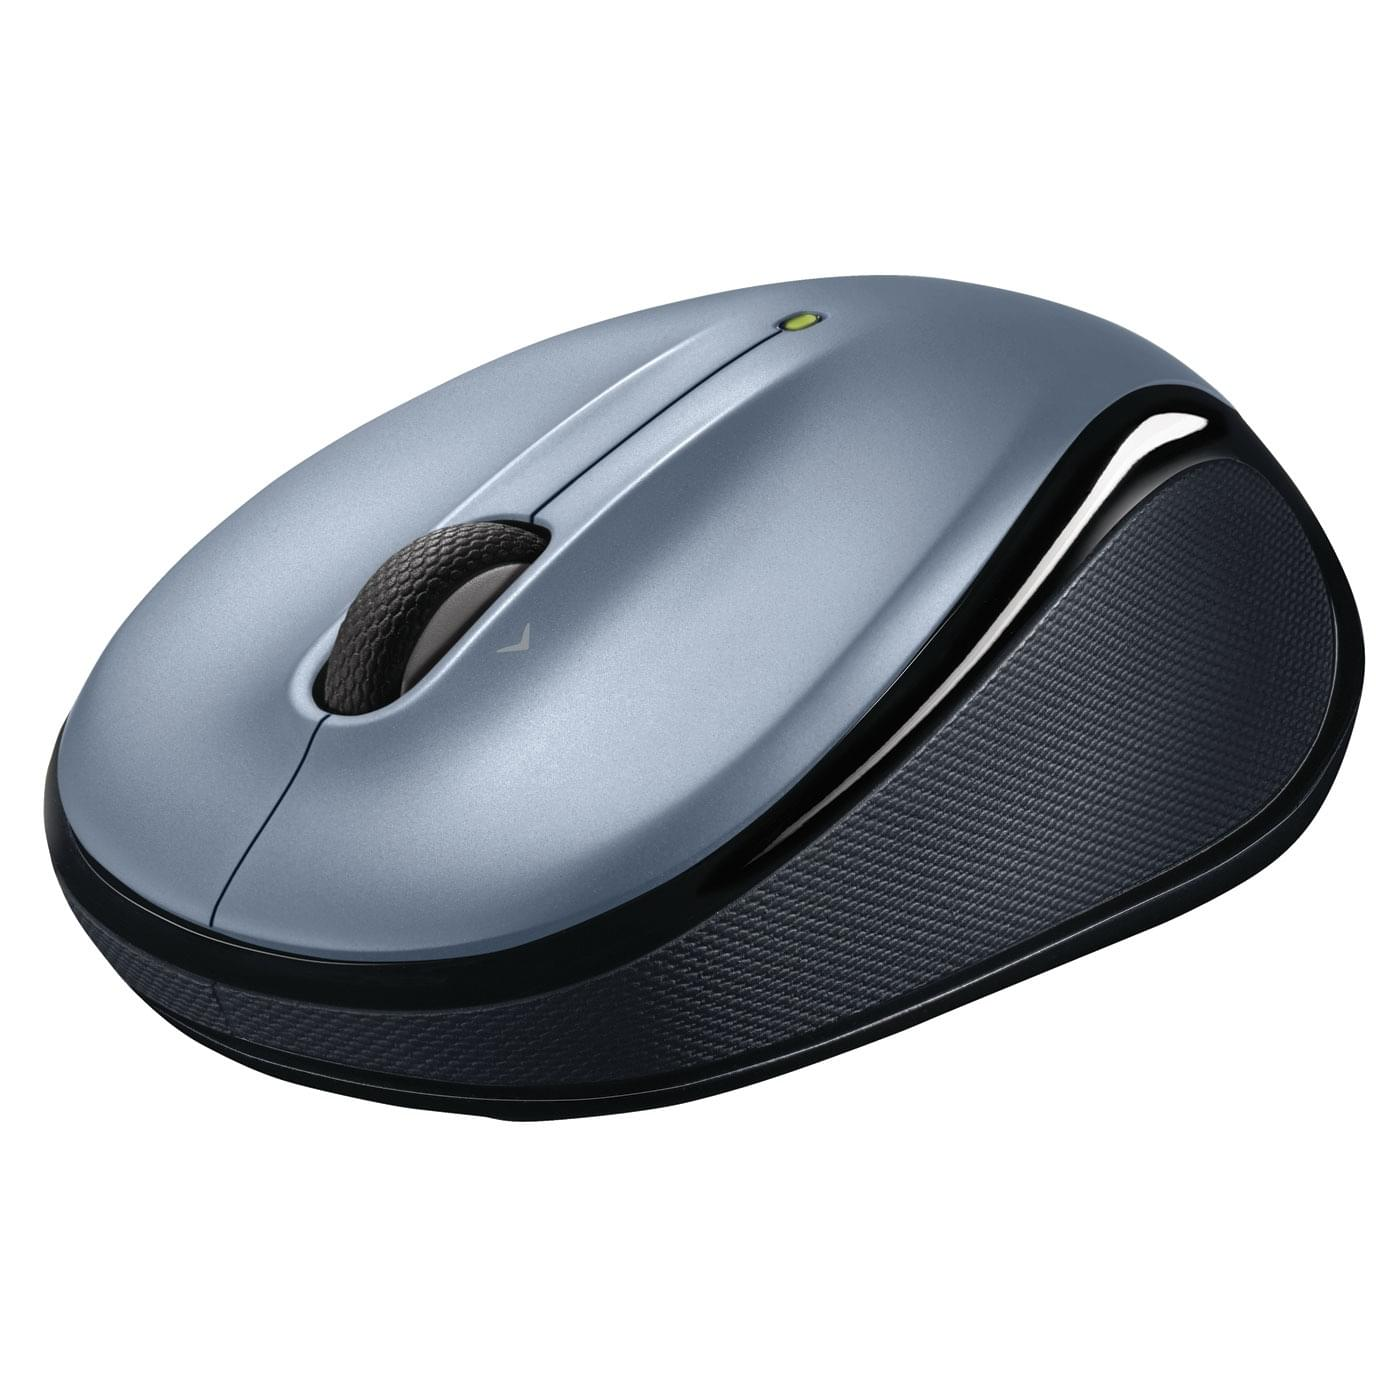 Logitech Wireless Mouse M325 Light Silver (910-002334) - Achat / Vente Souris PC sur Cybertek.fr - 0